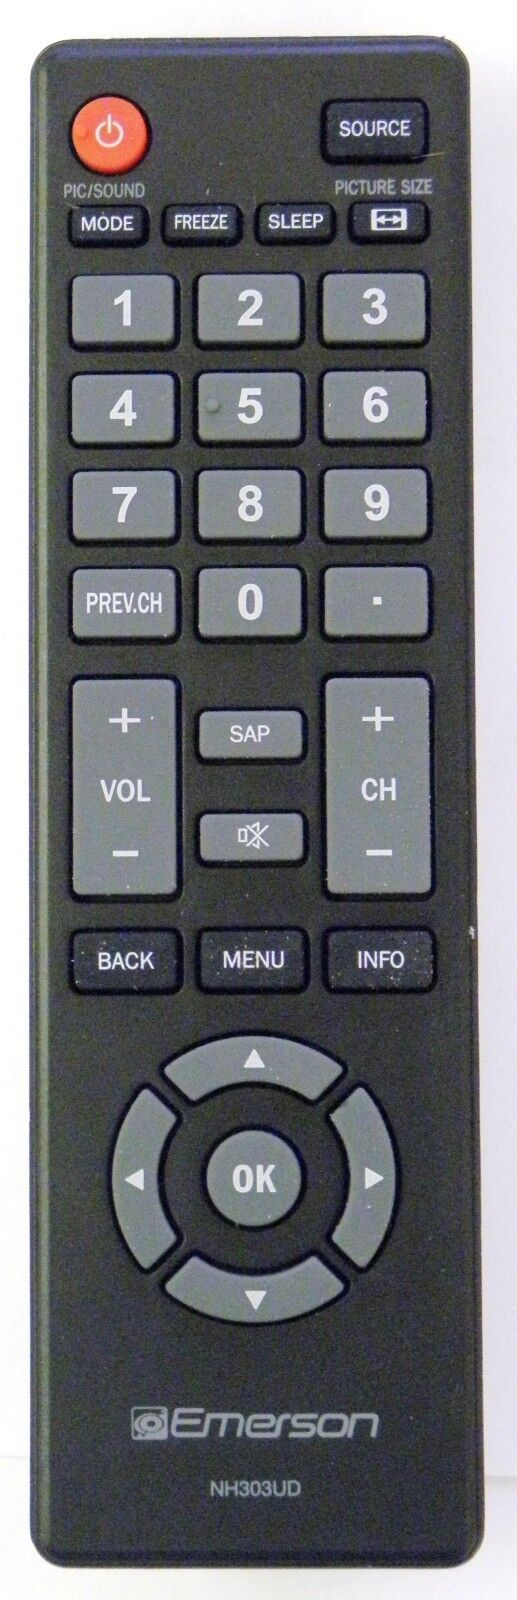 EMERSON NH303UD - NH305UD TV Remote - Genuine Emerson NH303U